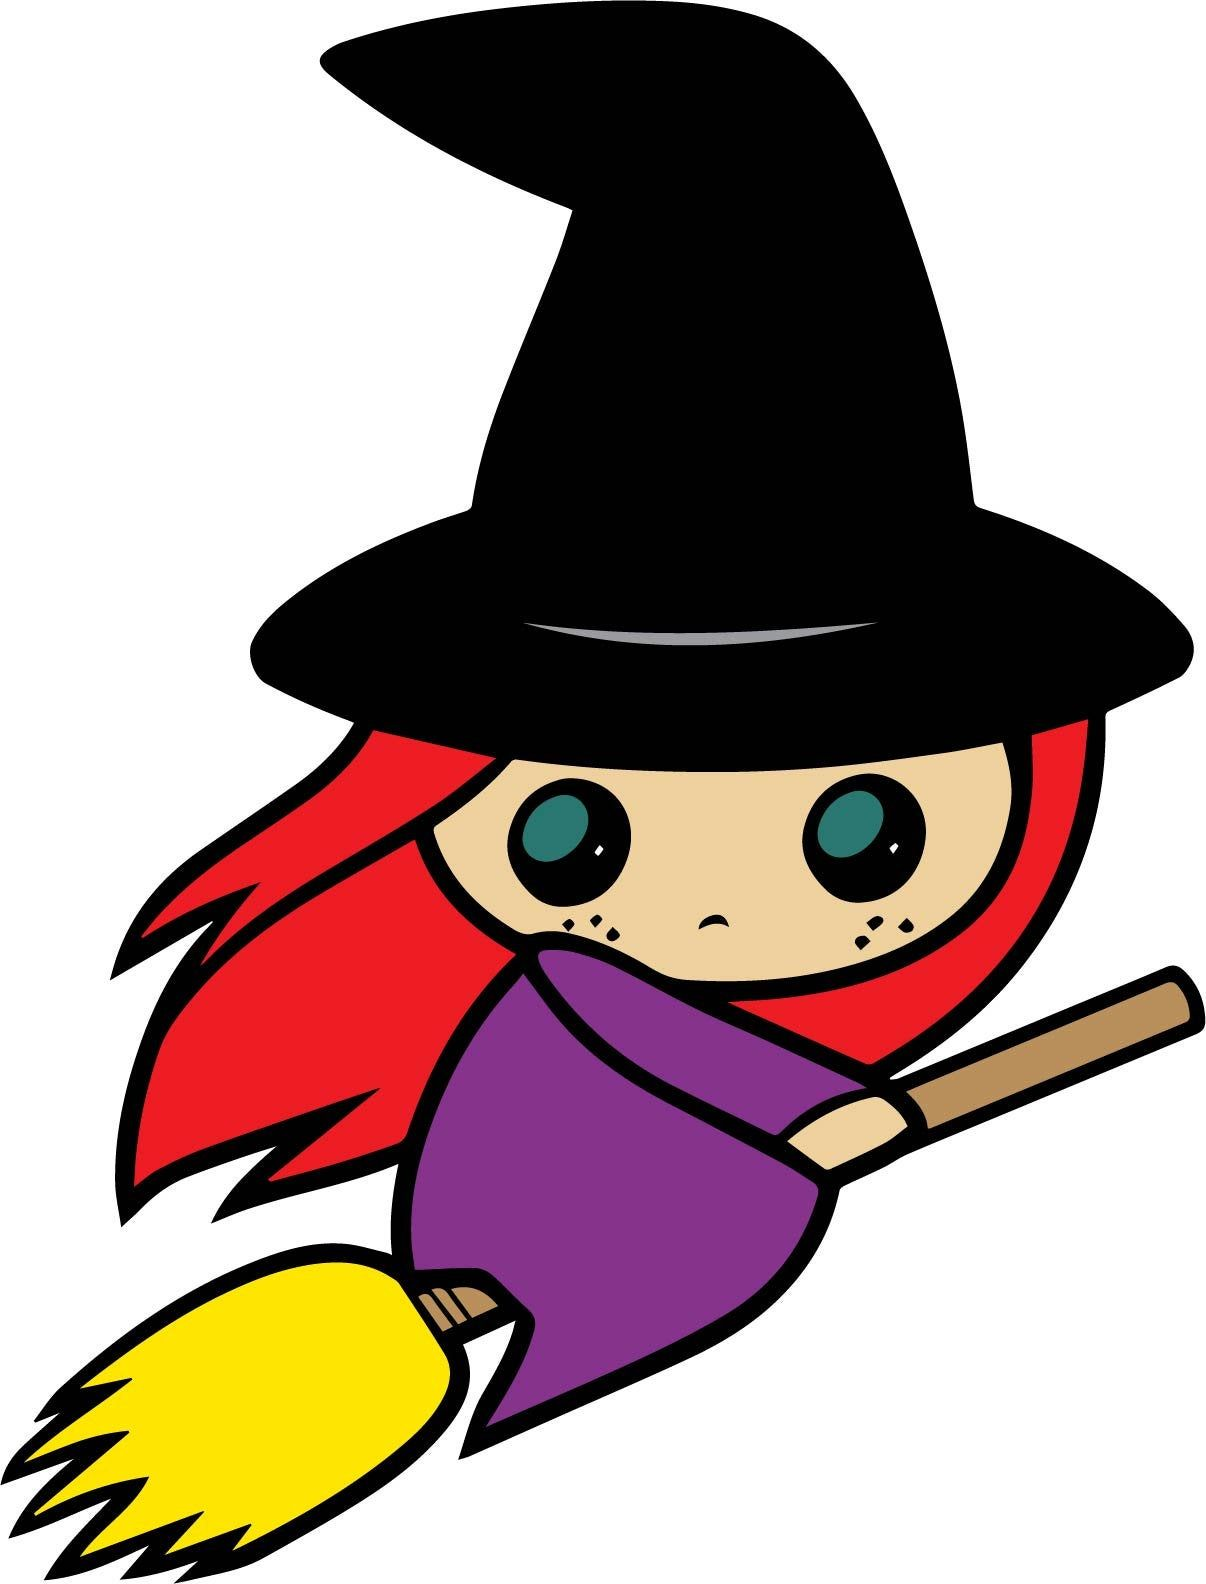 Cute Witch Svg Witch Svg Pokemon Jigglypuff Witch